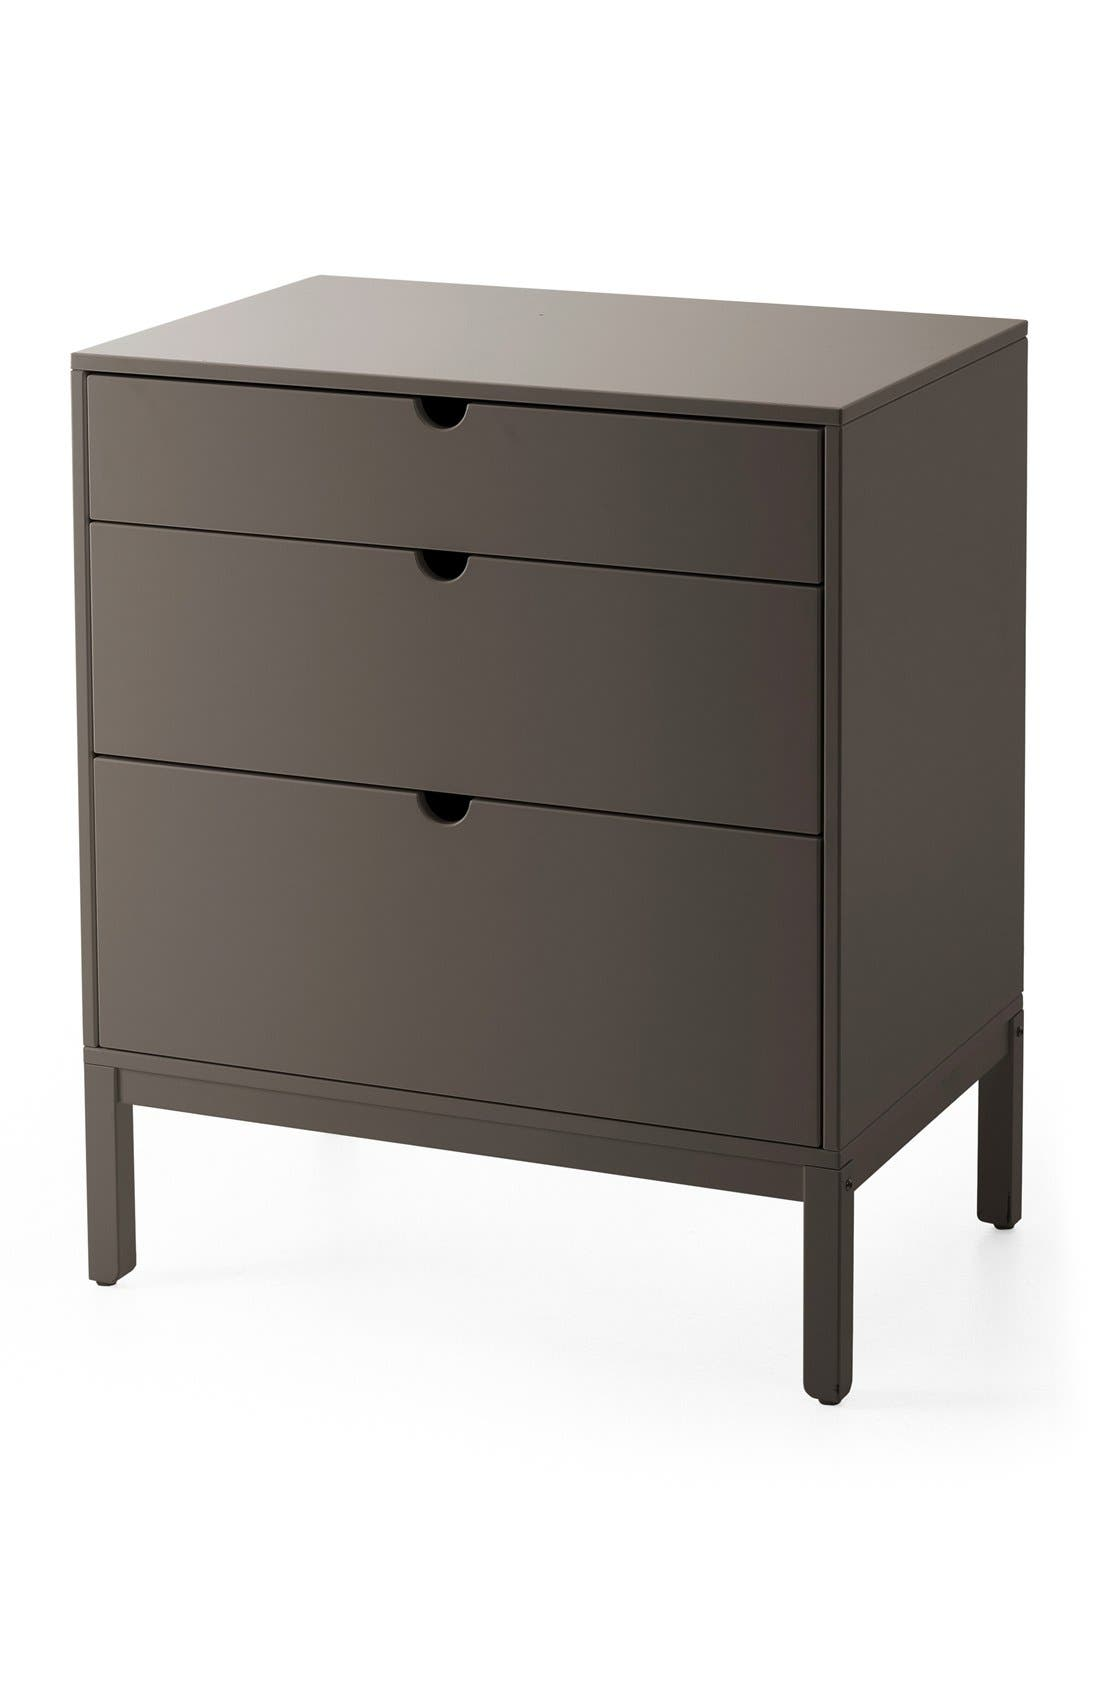 Alternate Image 1 Selected - Stokke 'Home™' Dresser